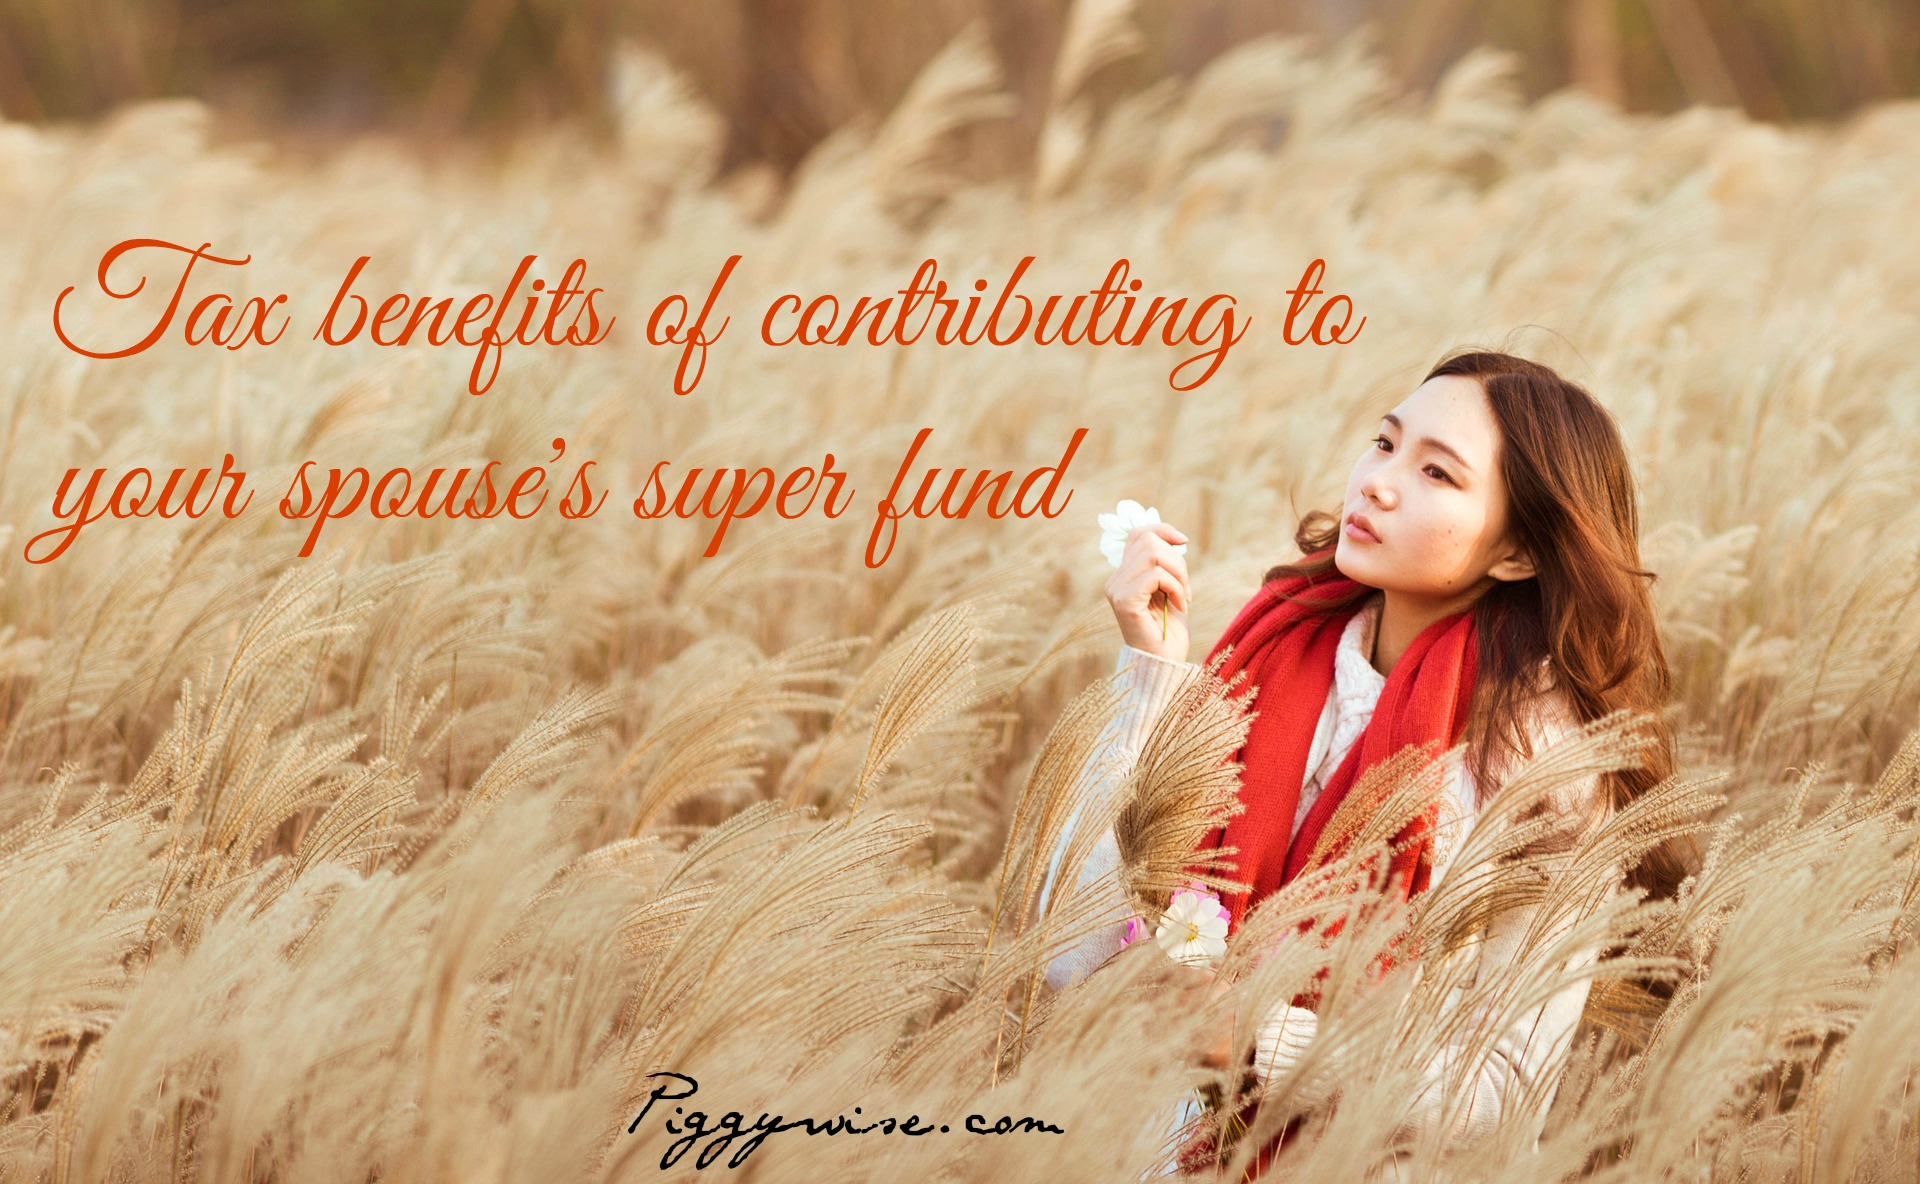 Tax benefits of contributing to your spouse's super fund